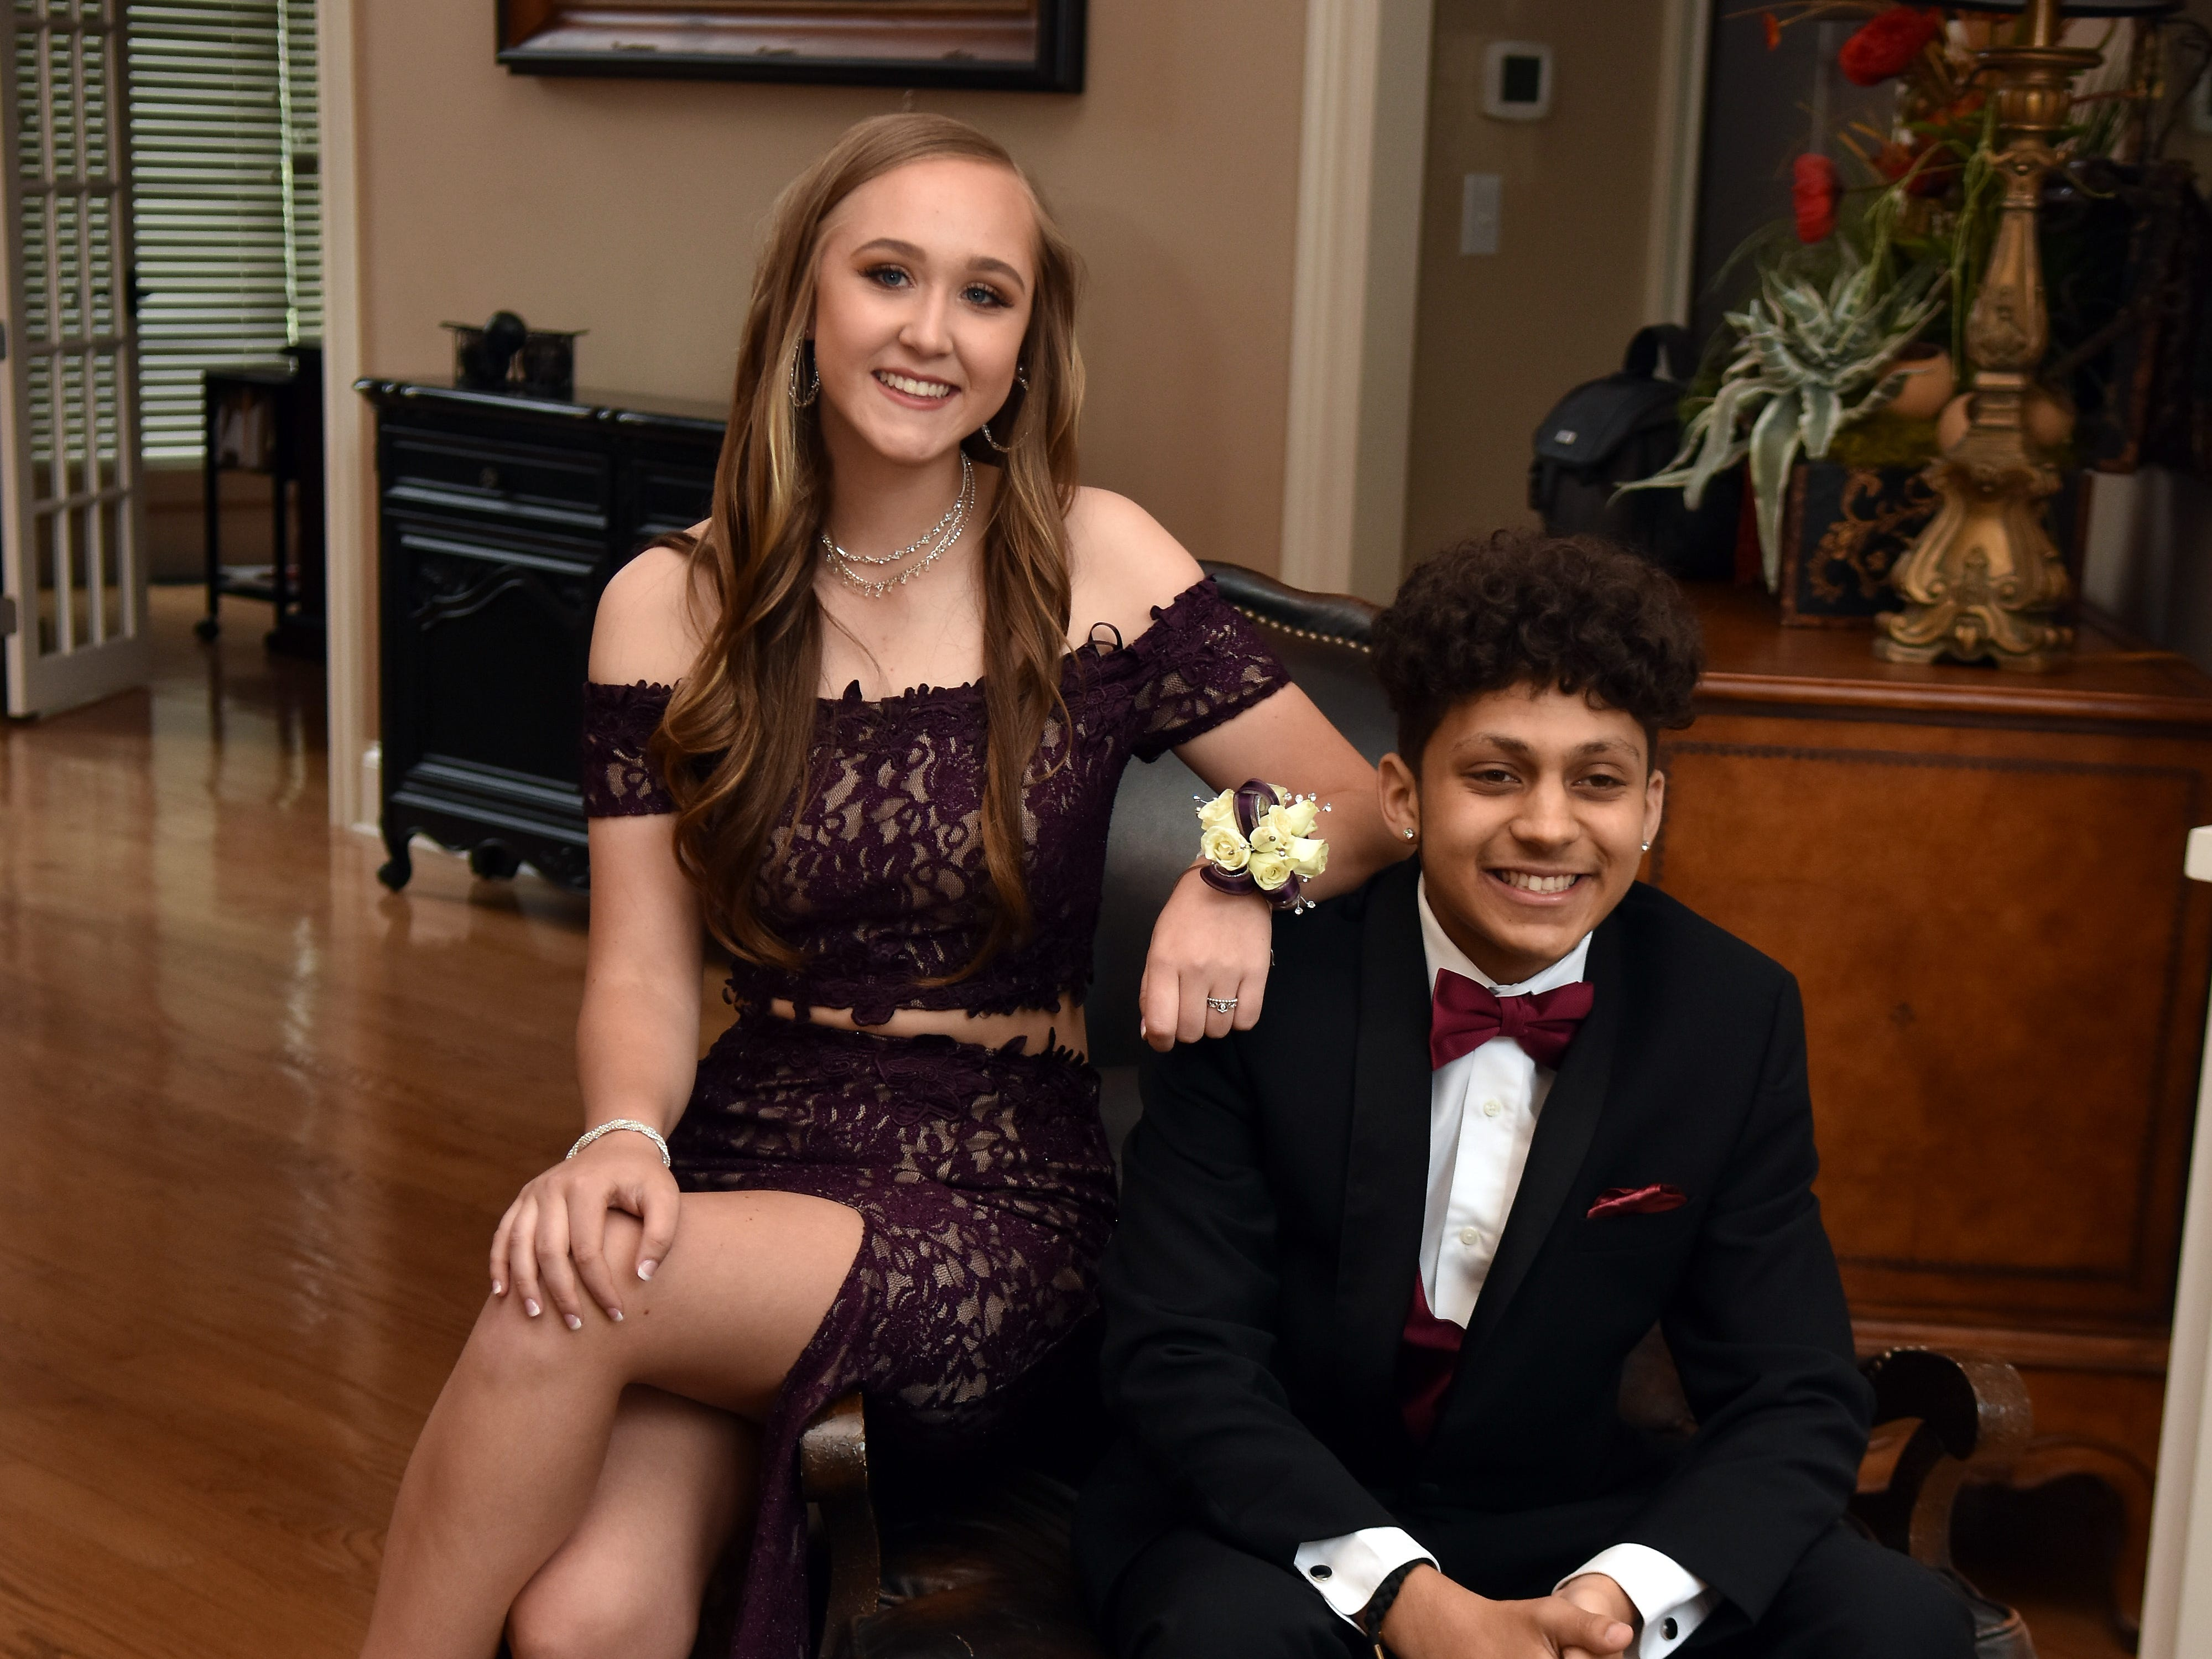 Scenes from the Fulton High prom at The Standard, Saturday, April 20, 2019.